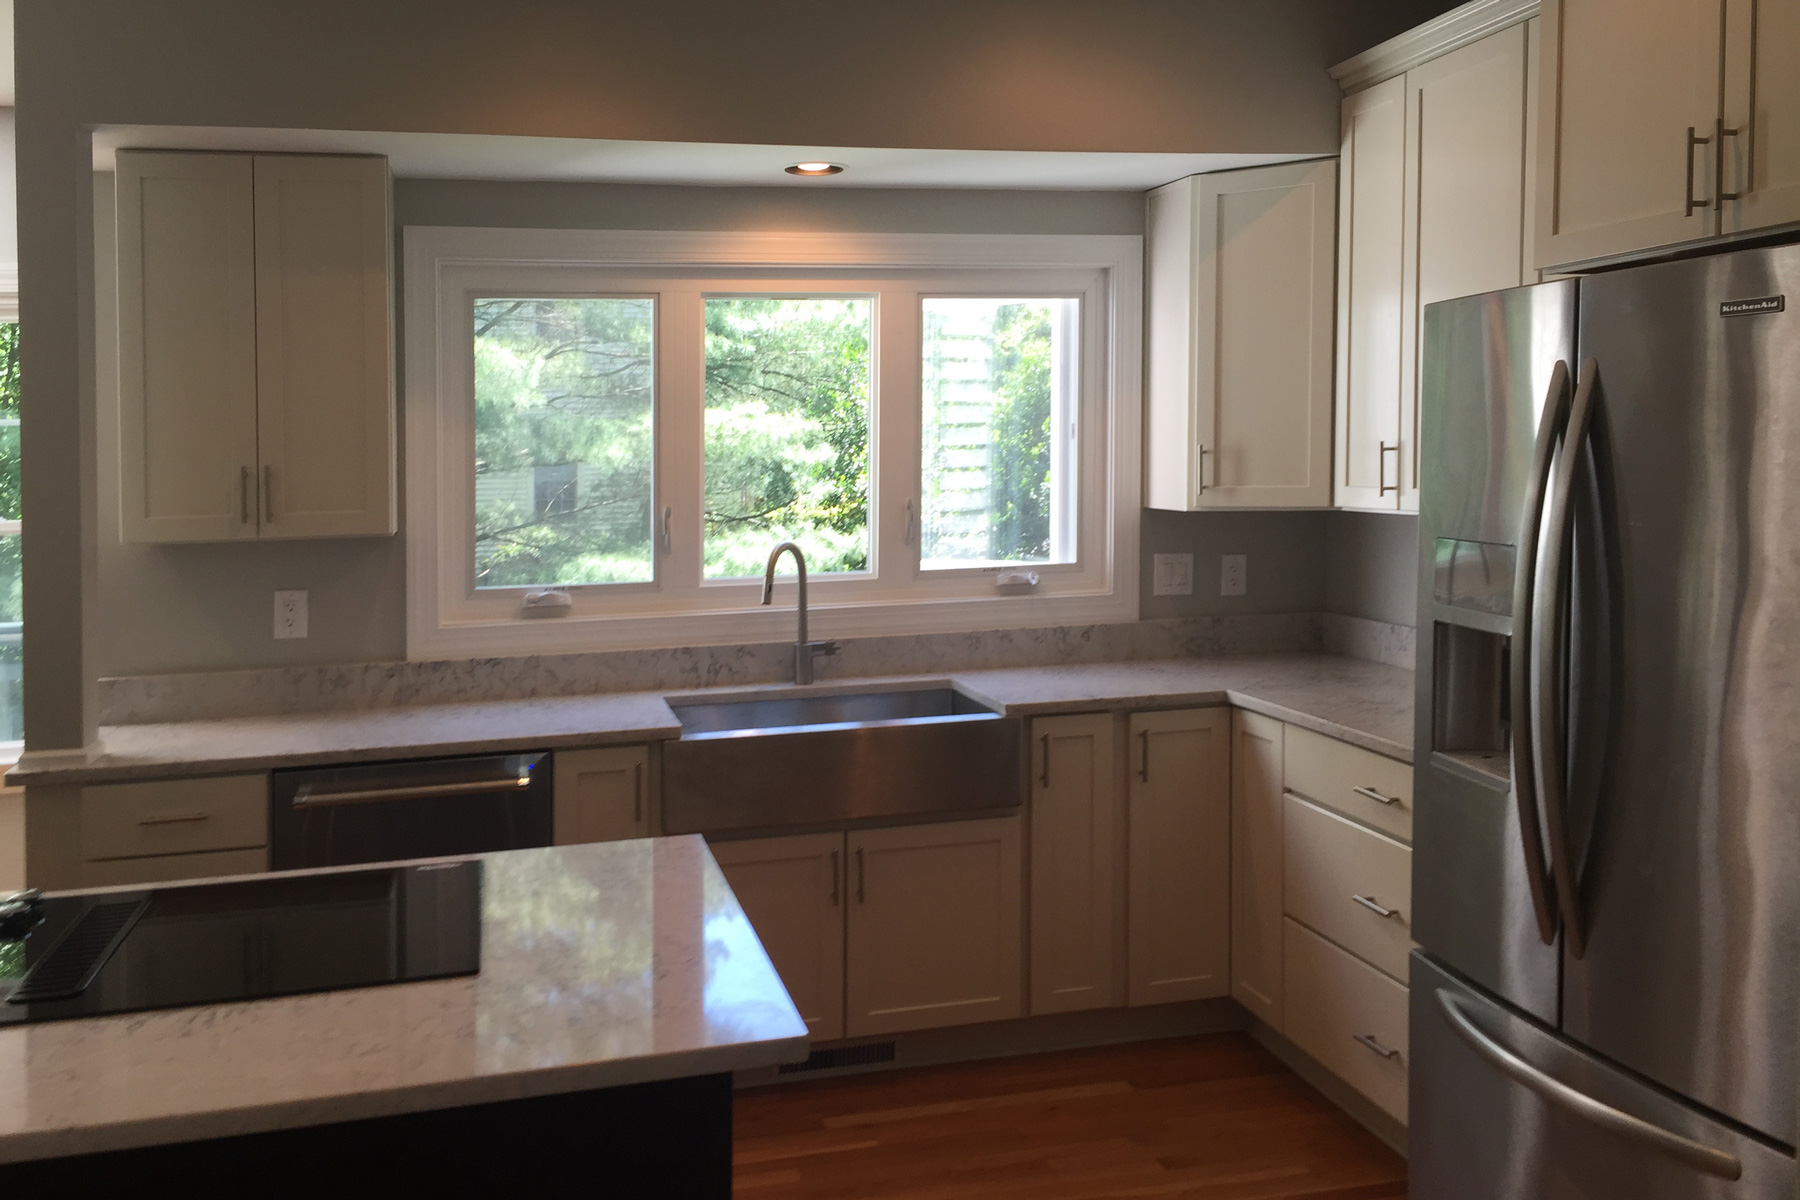 limestone galleries our remodels countertops silestone capri remodel bellingham rose job after kitchen construction of